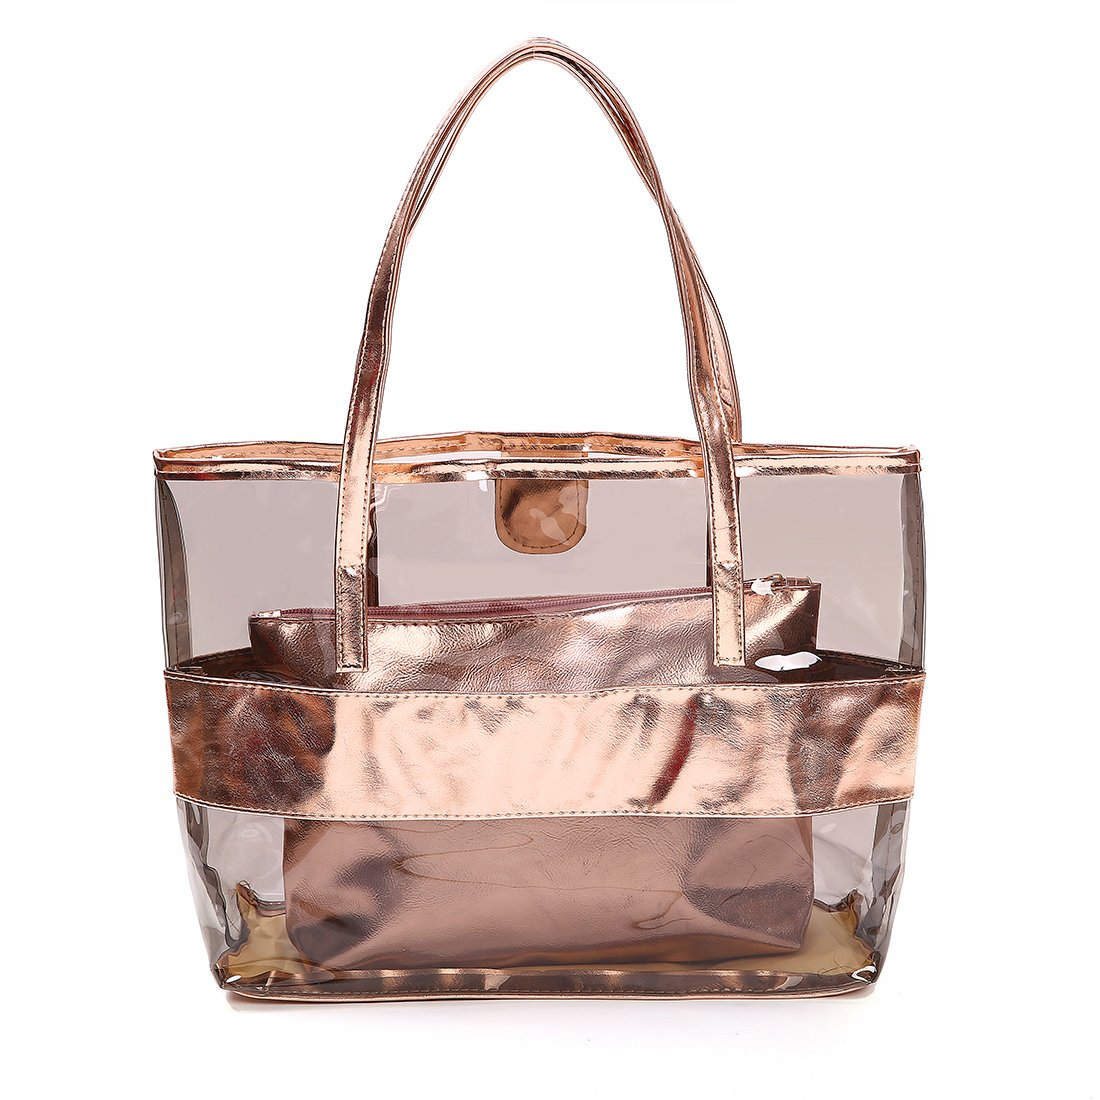 FANCY LOVE Waterprof Semi-clear Tote Stripe Beach Shoulder Bag (Rose gold)